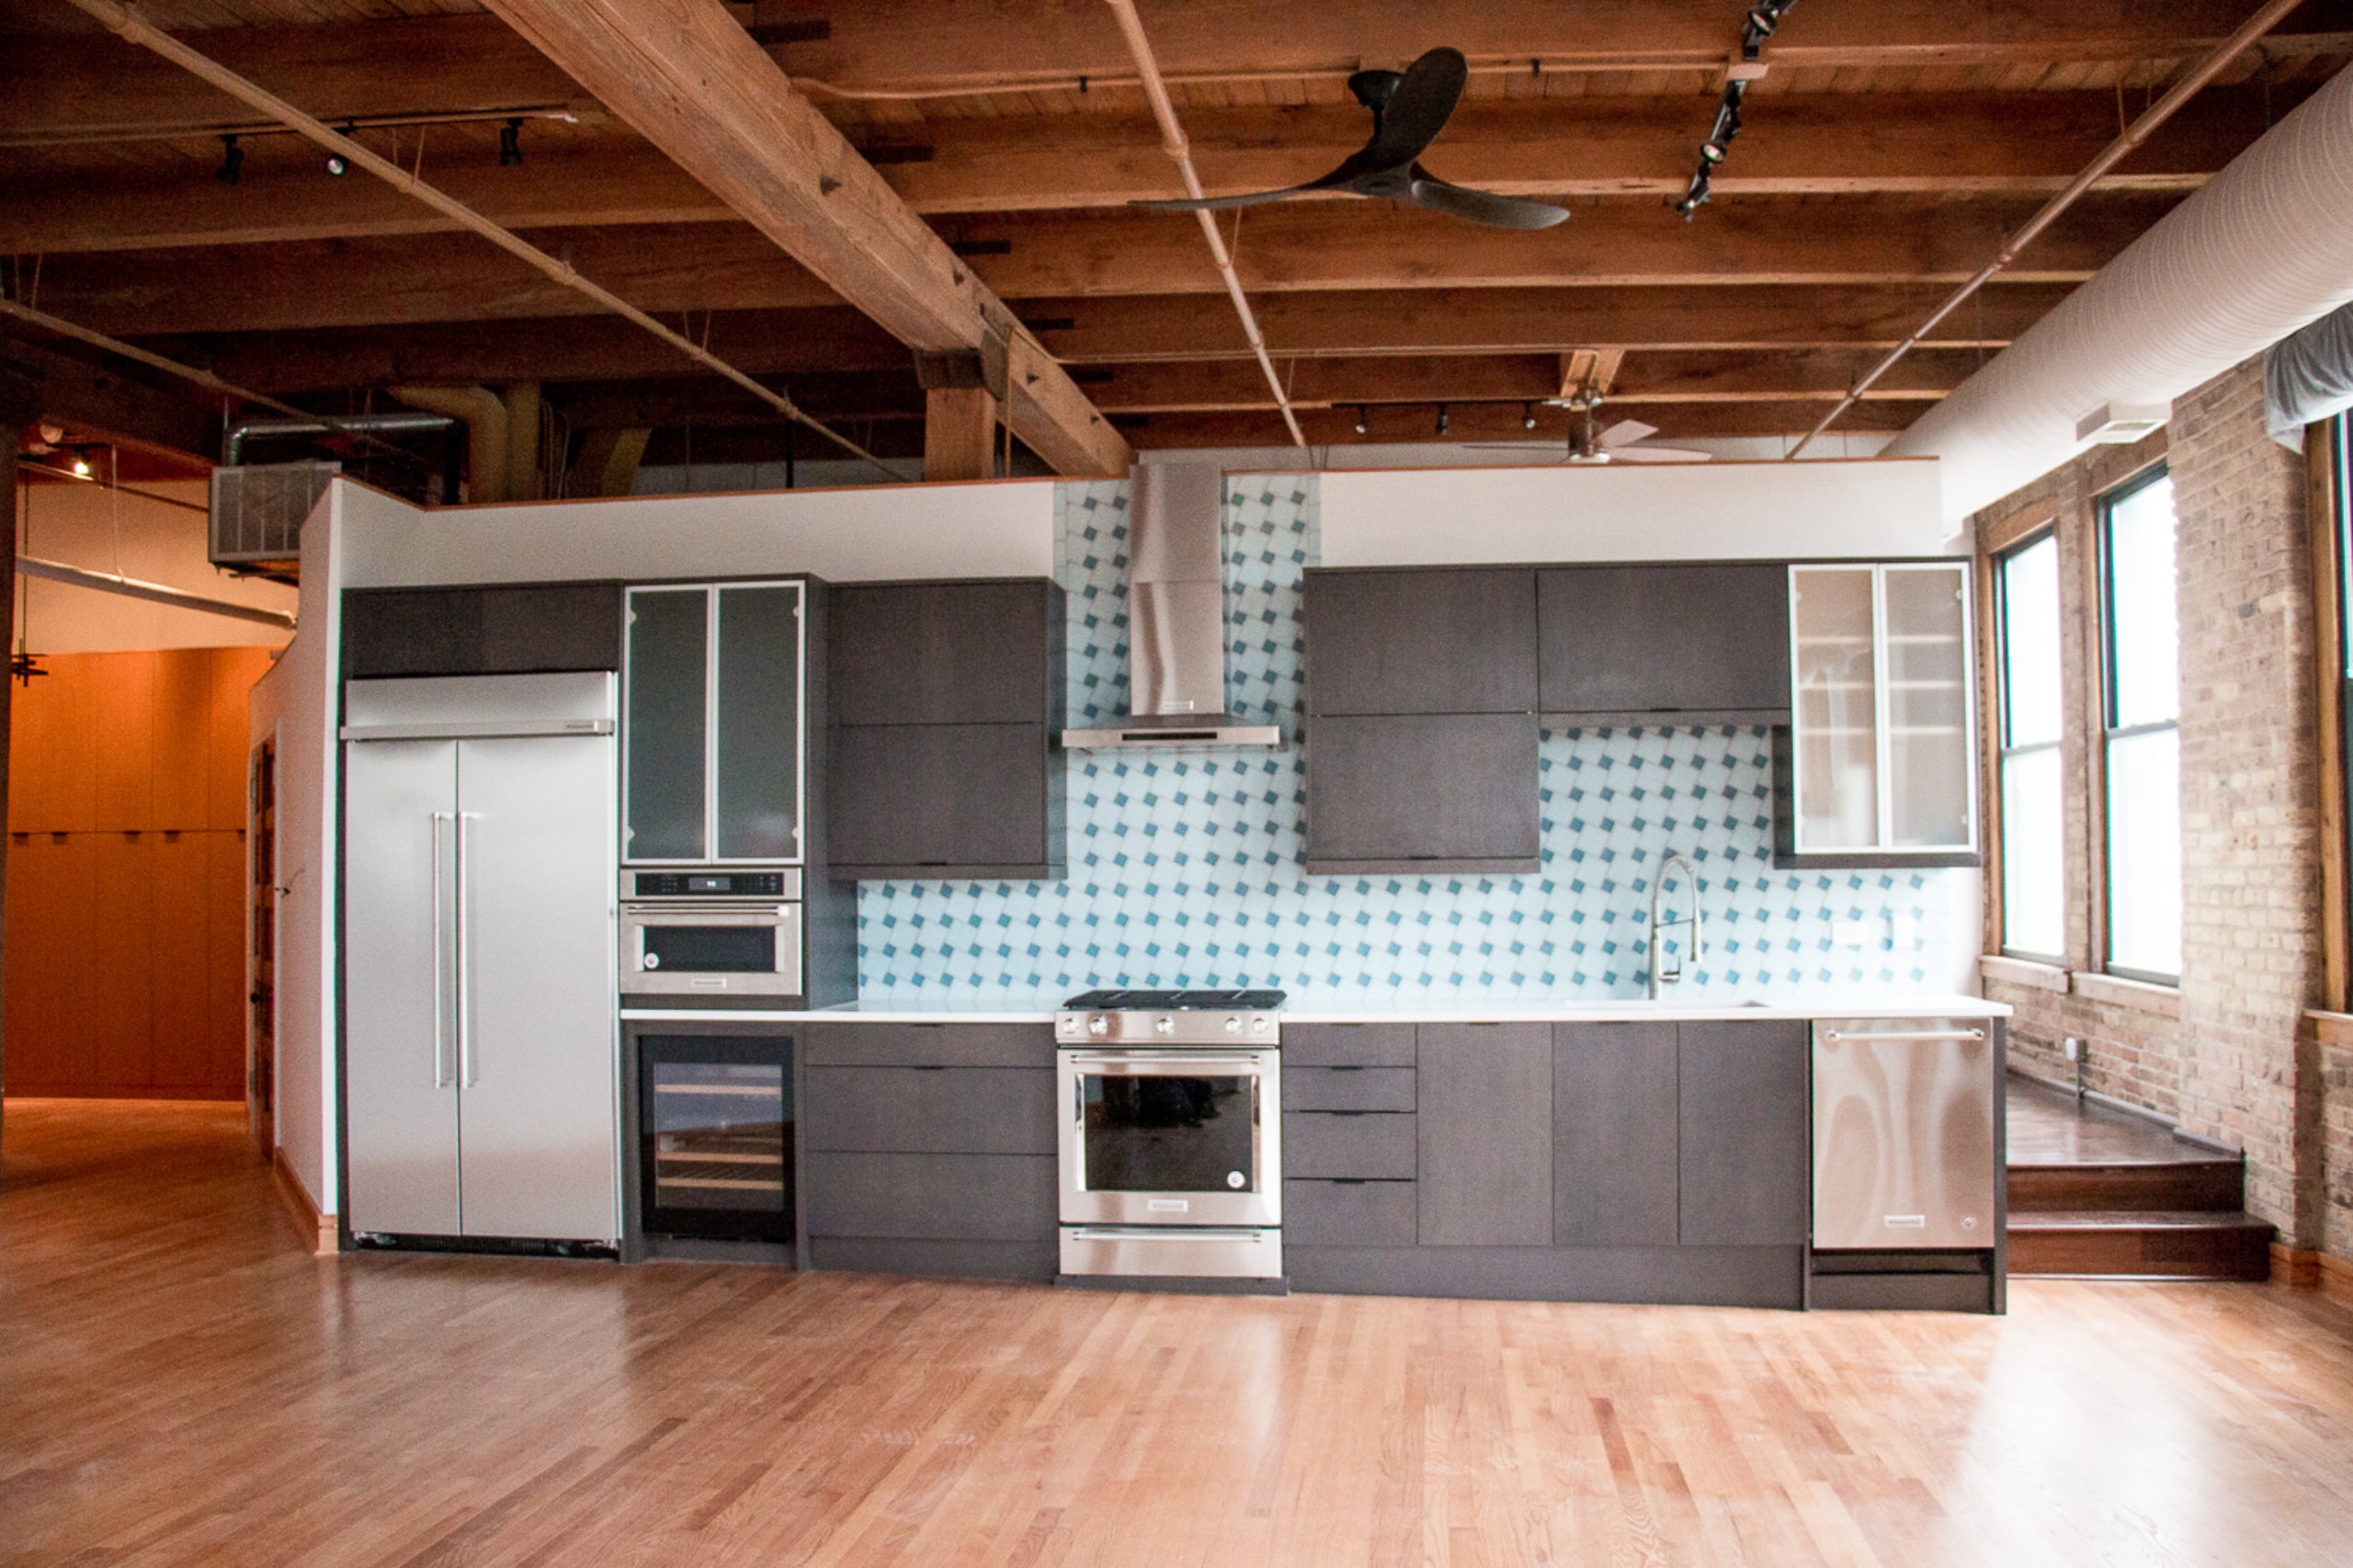 Chicago Near West Condo Kitchen Remodel